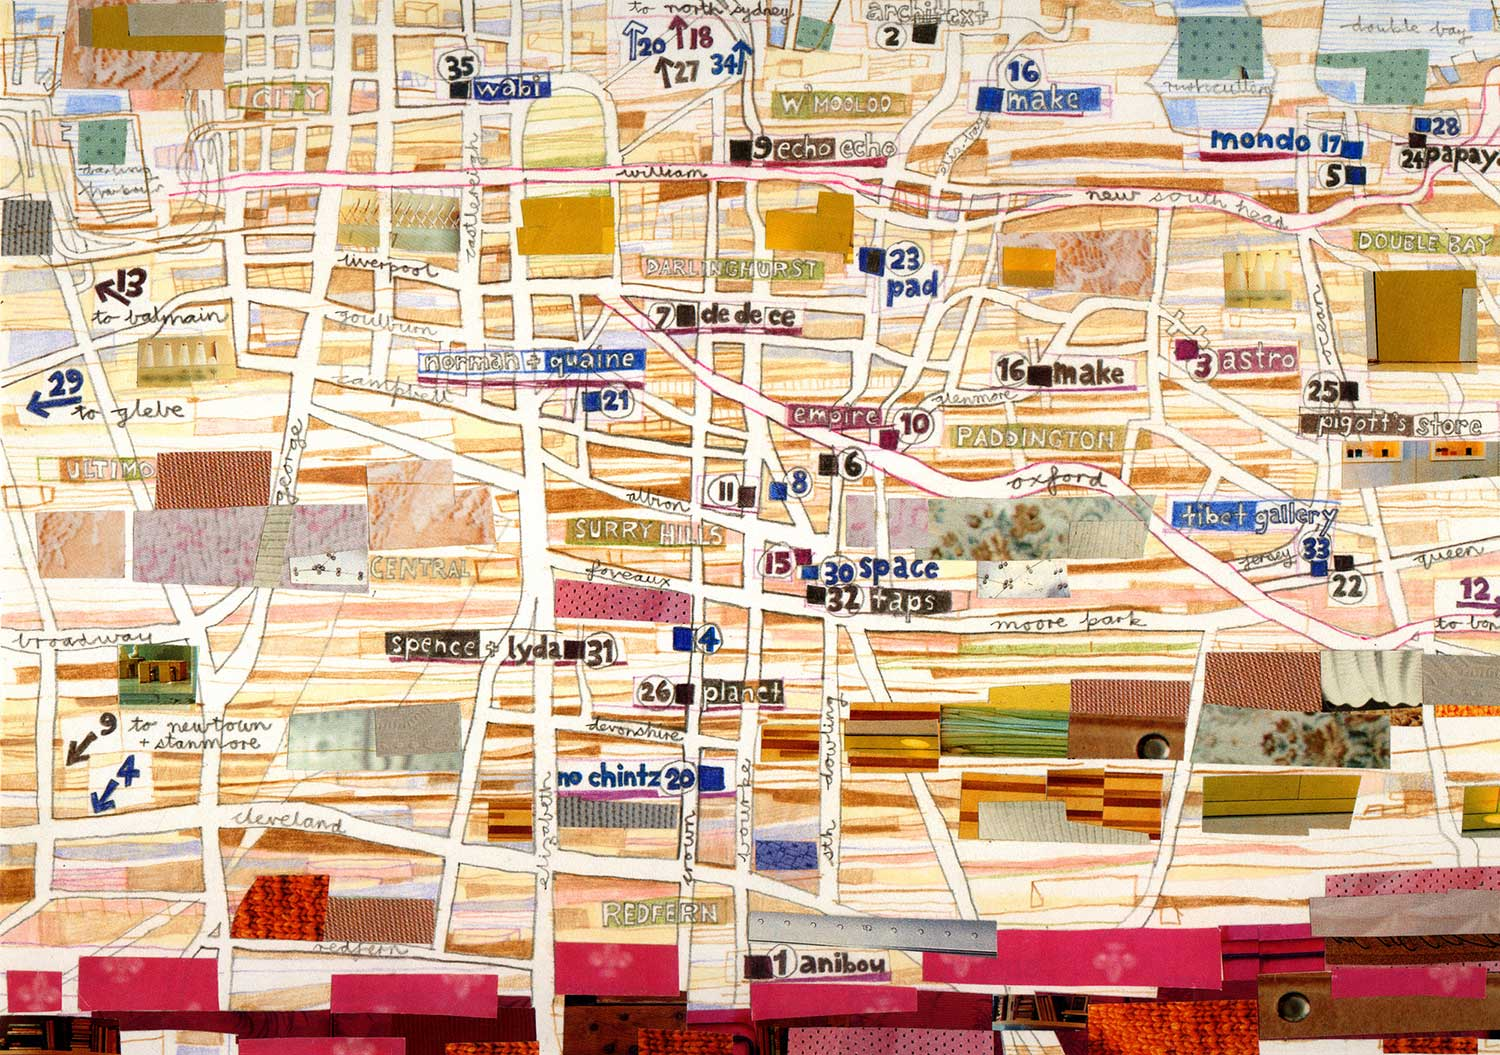 Sydney Design Week 2000 Map